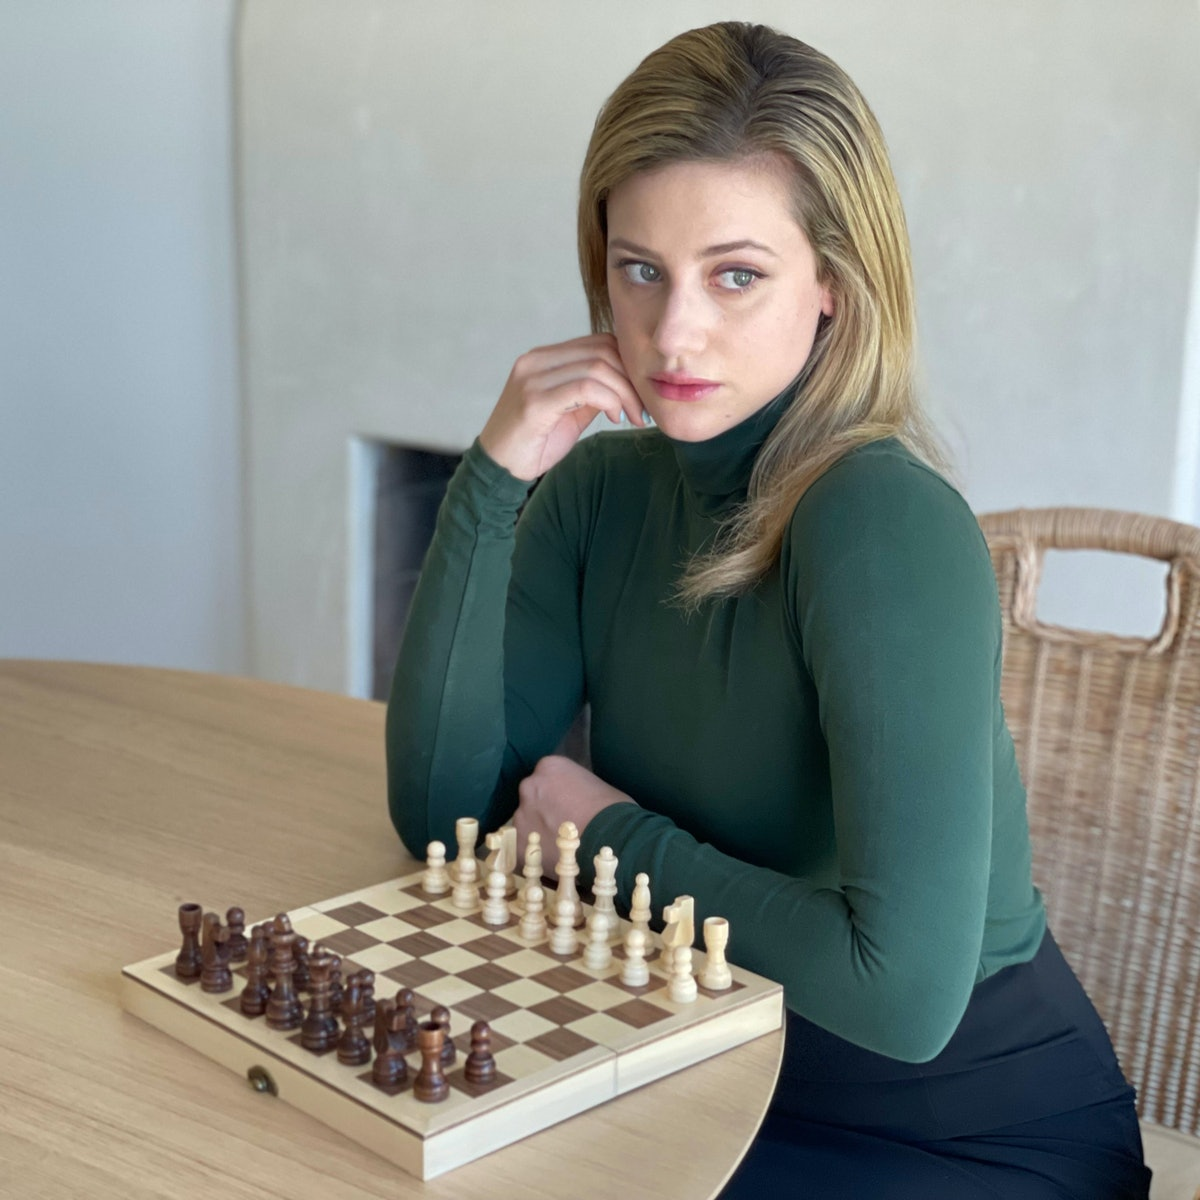 Lili Reinhart as Beth Harmon from The Queen's Gambit